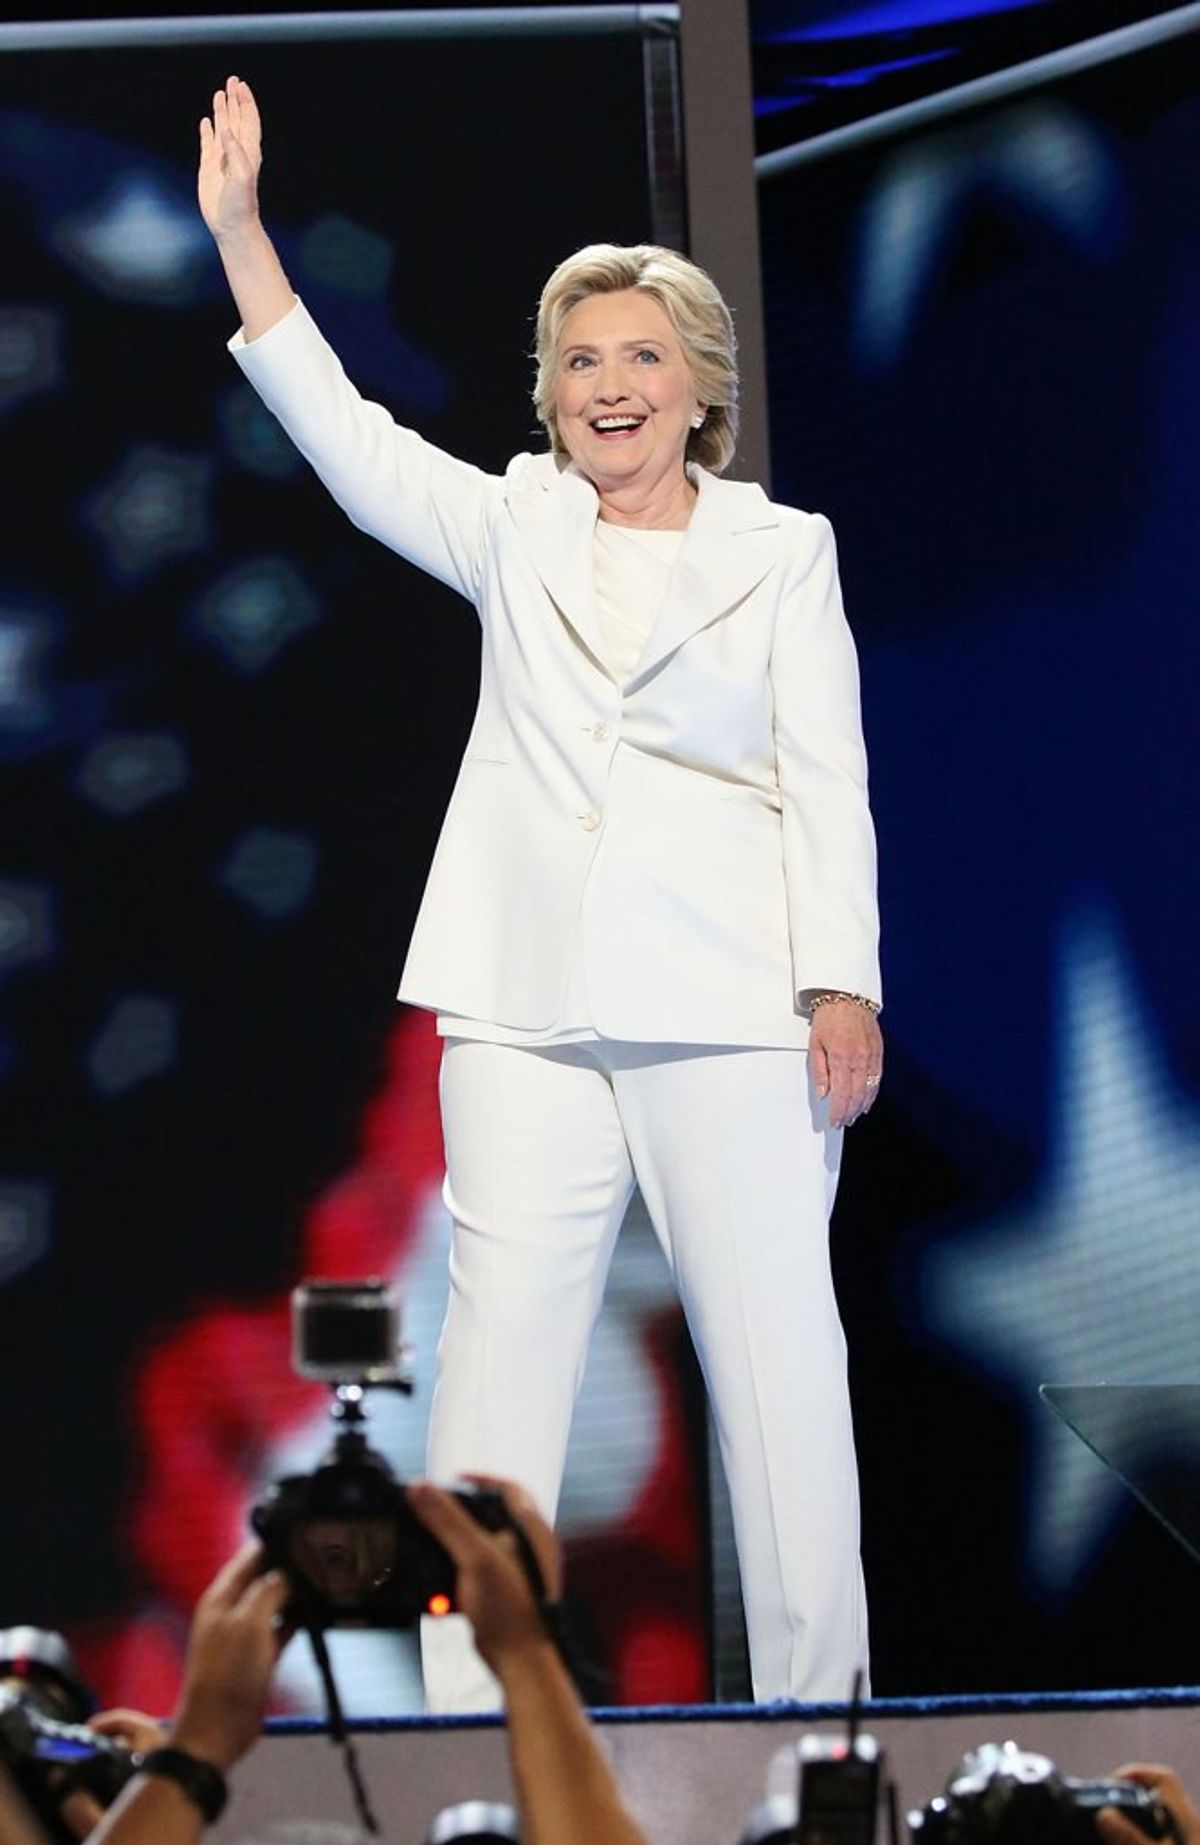 I Want A Woman President, But Not This Woman.